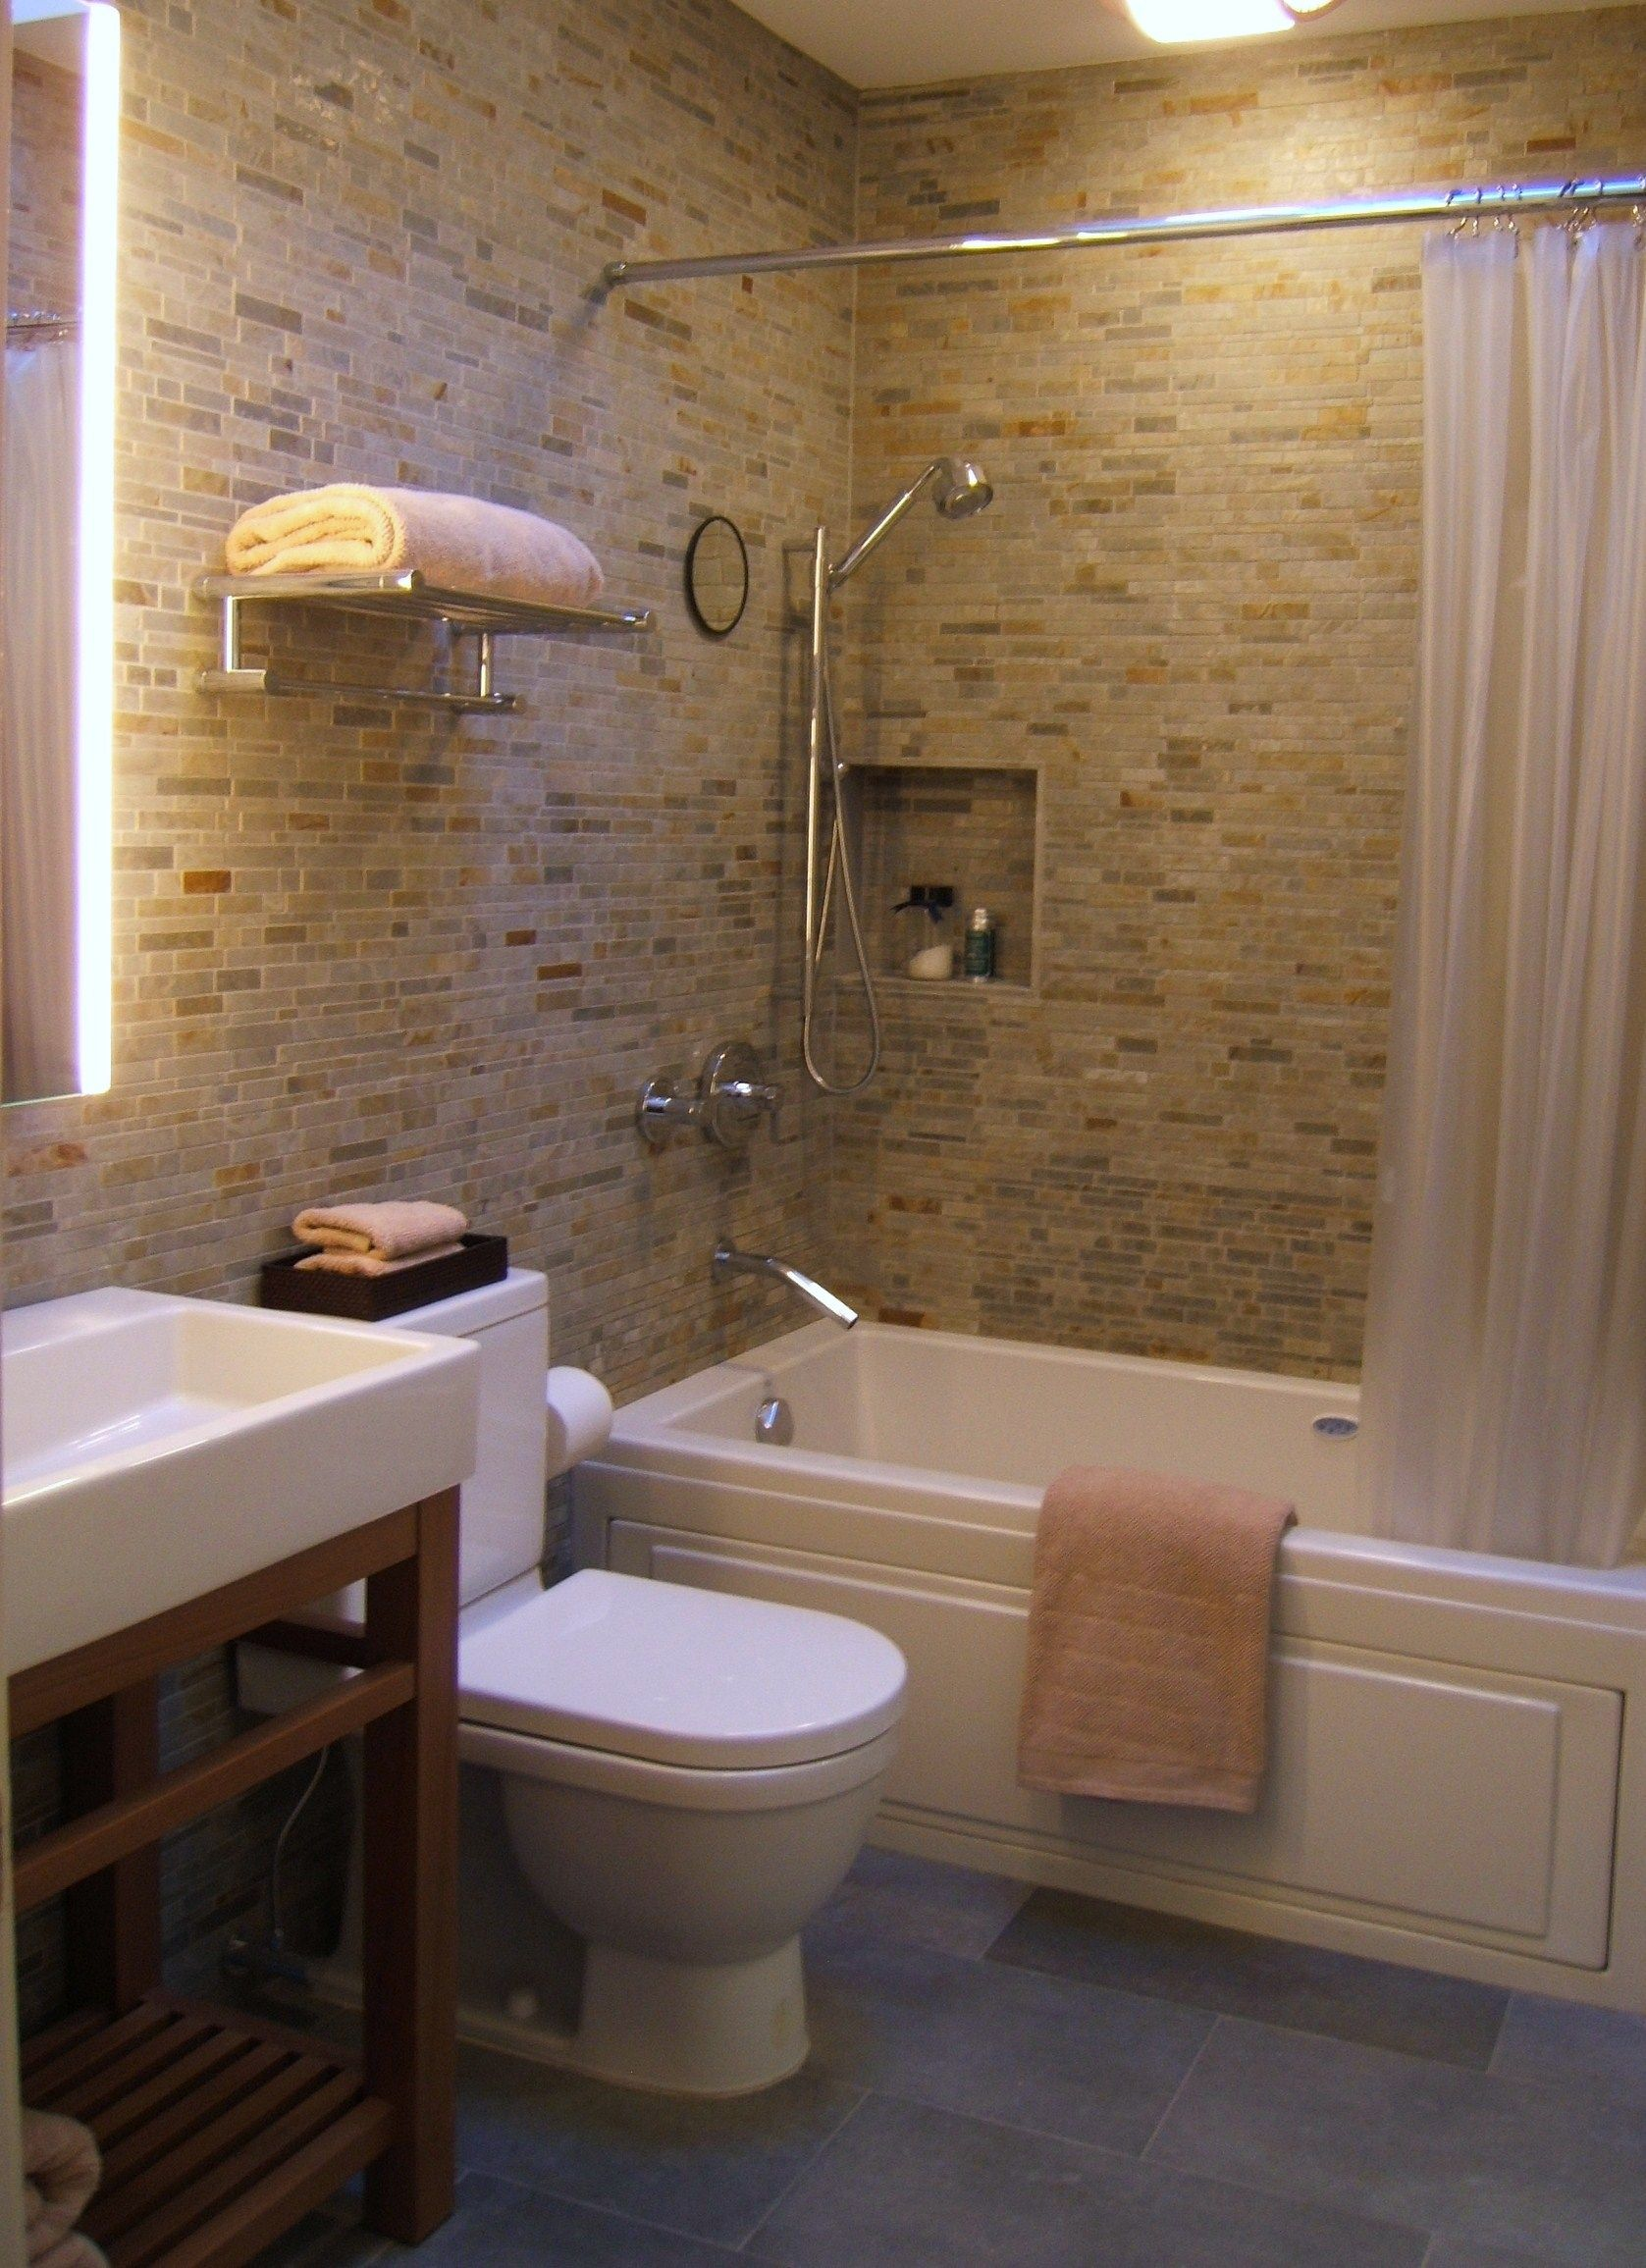 Small bathroom designs south africa small bath for Tiny bathroom designs